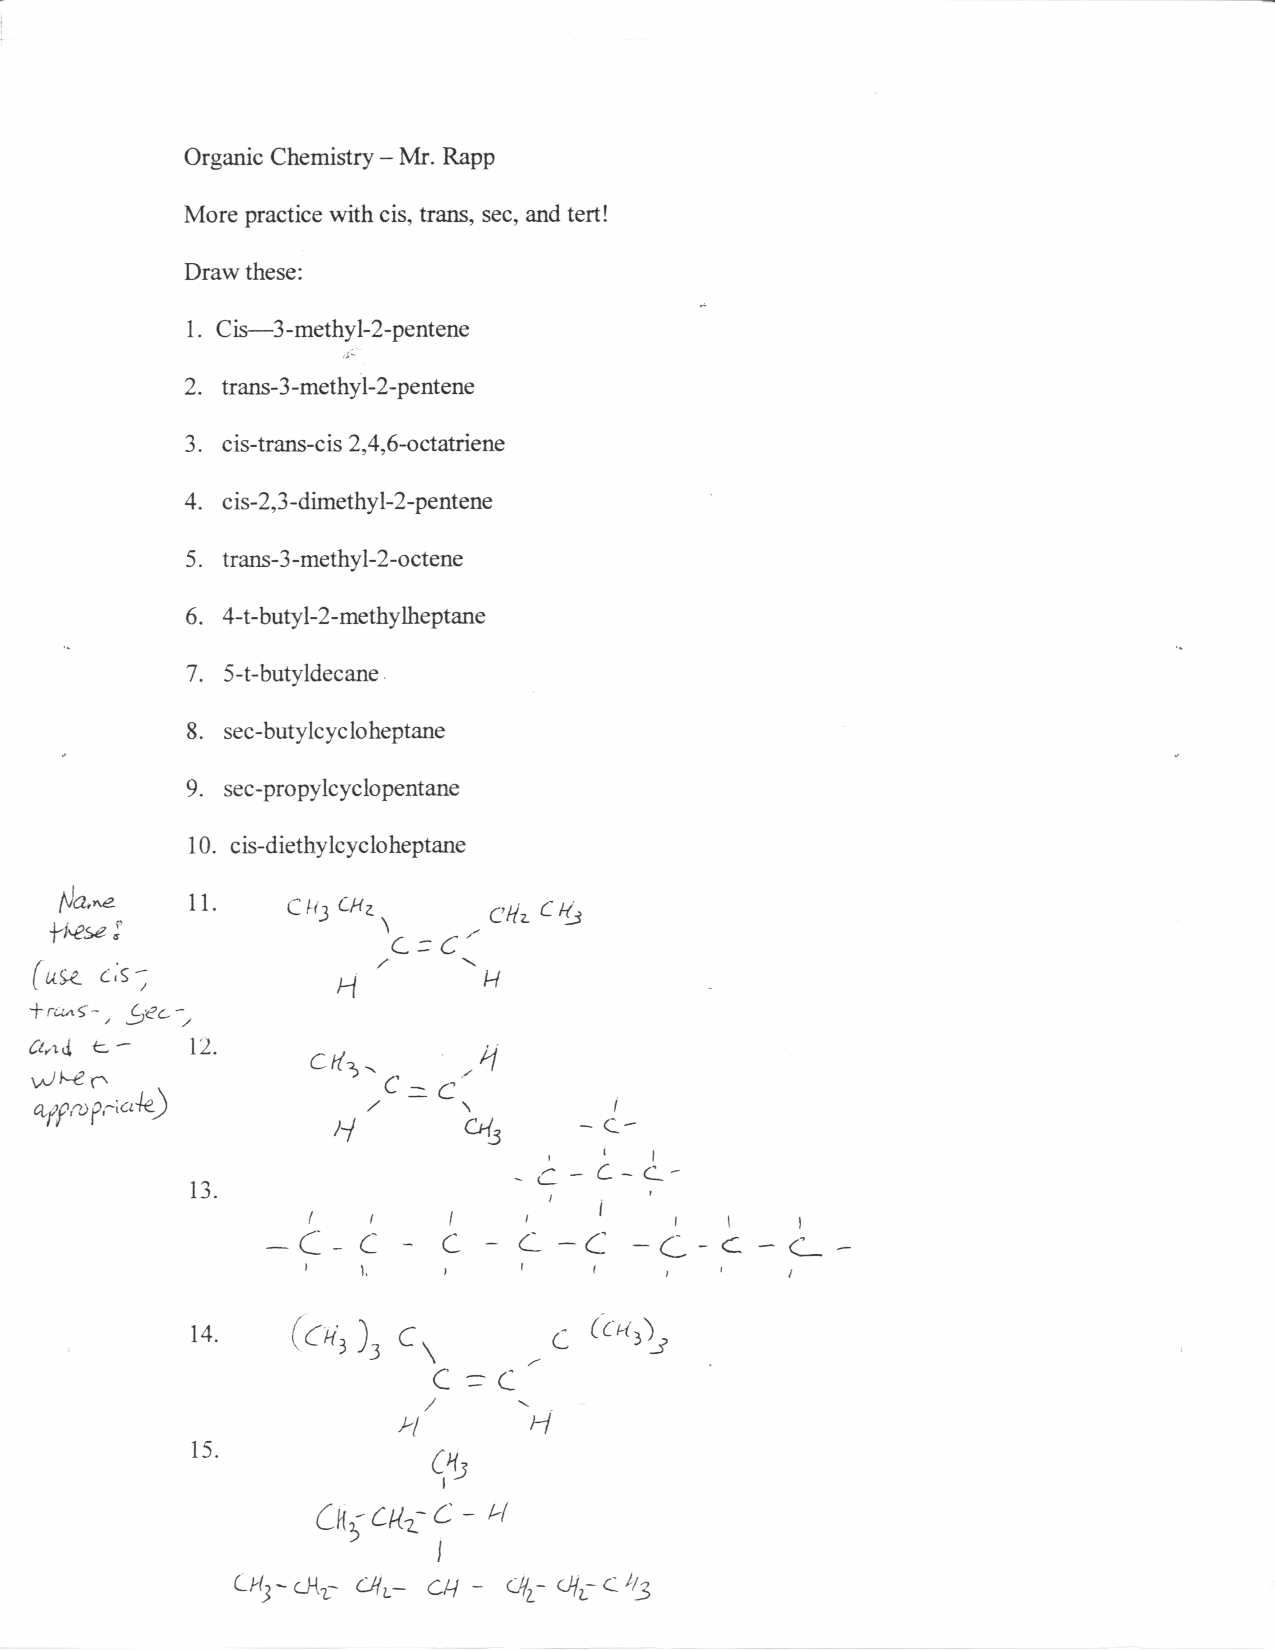 General Chemistry Worksheets - Sweet Briar College.